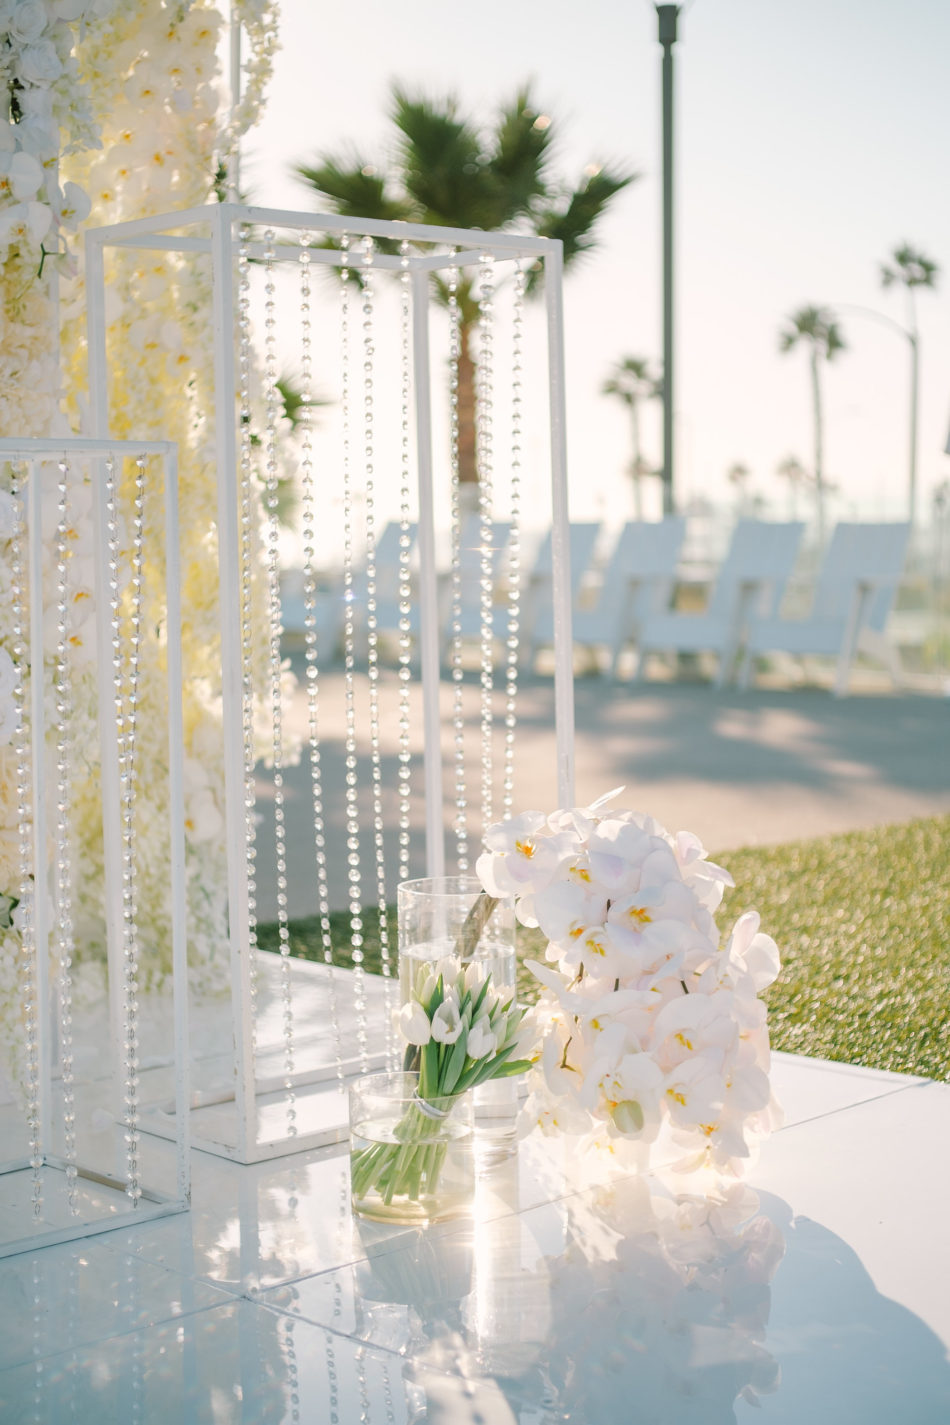 white ceremony florals, white wedding, white ceremony, magnificent all-white wedding, floral design, florist, wedding florist, wedding flowers, orange county weddings, orange county wedding florist, orange county florist, orange county floral design, flowers by cina